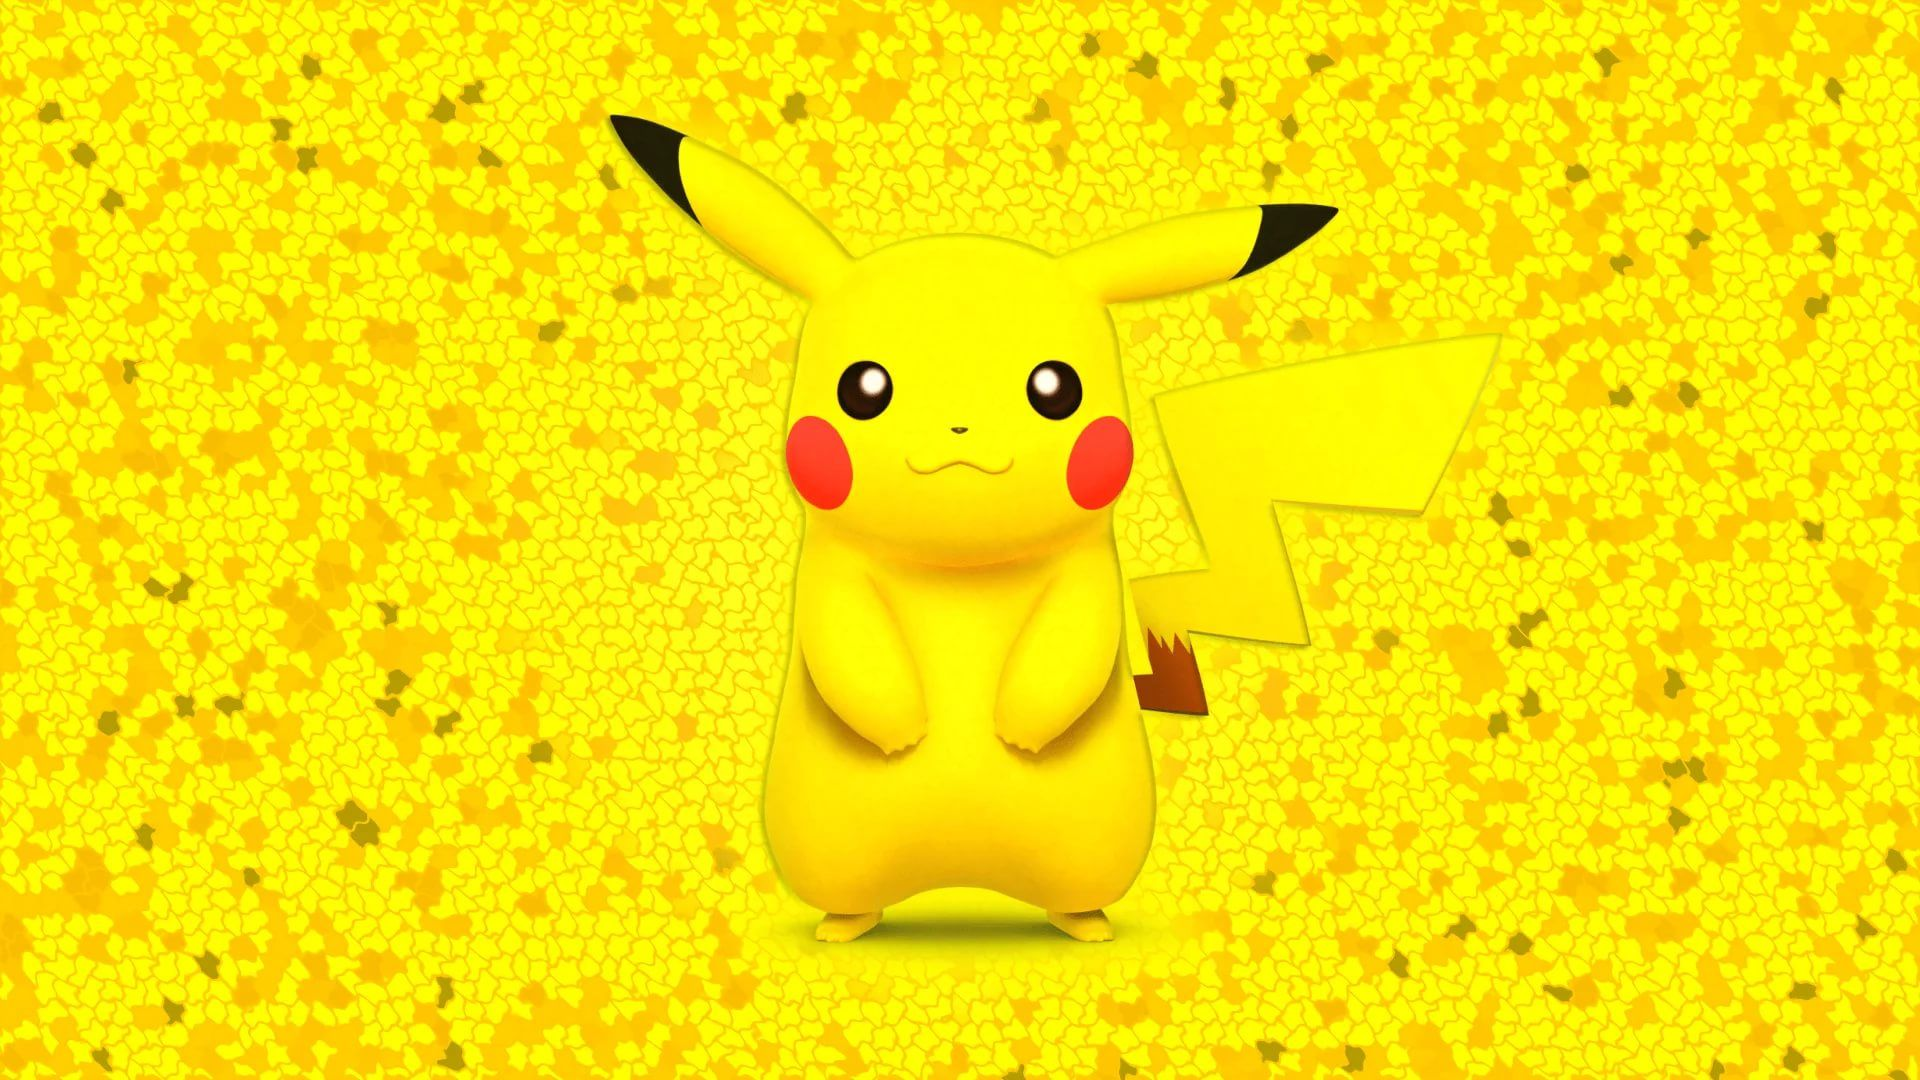 Pokemon 3d Wallpapers (21+ images